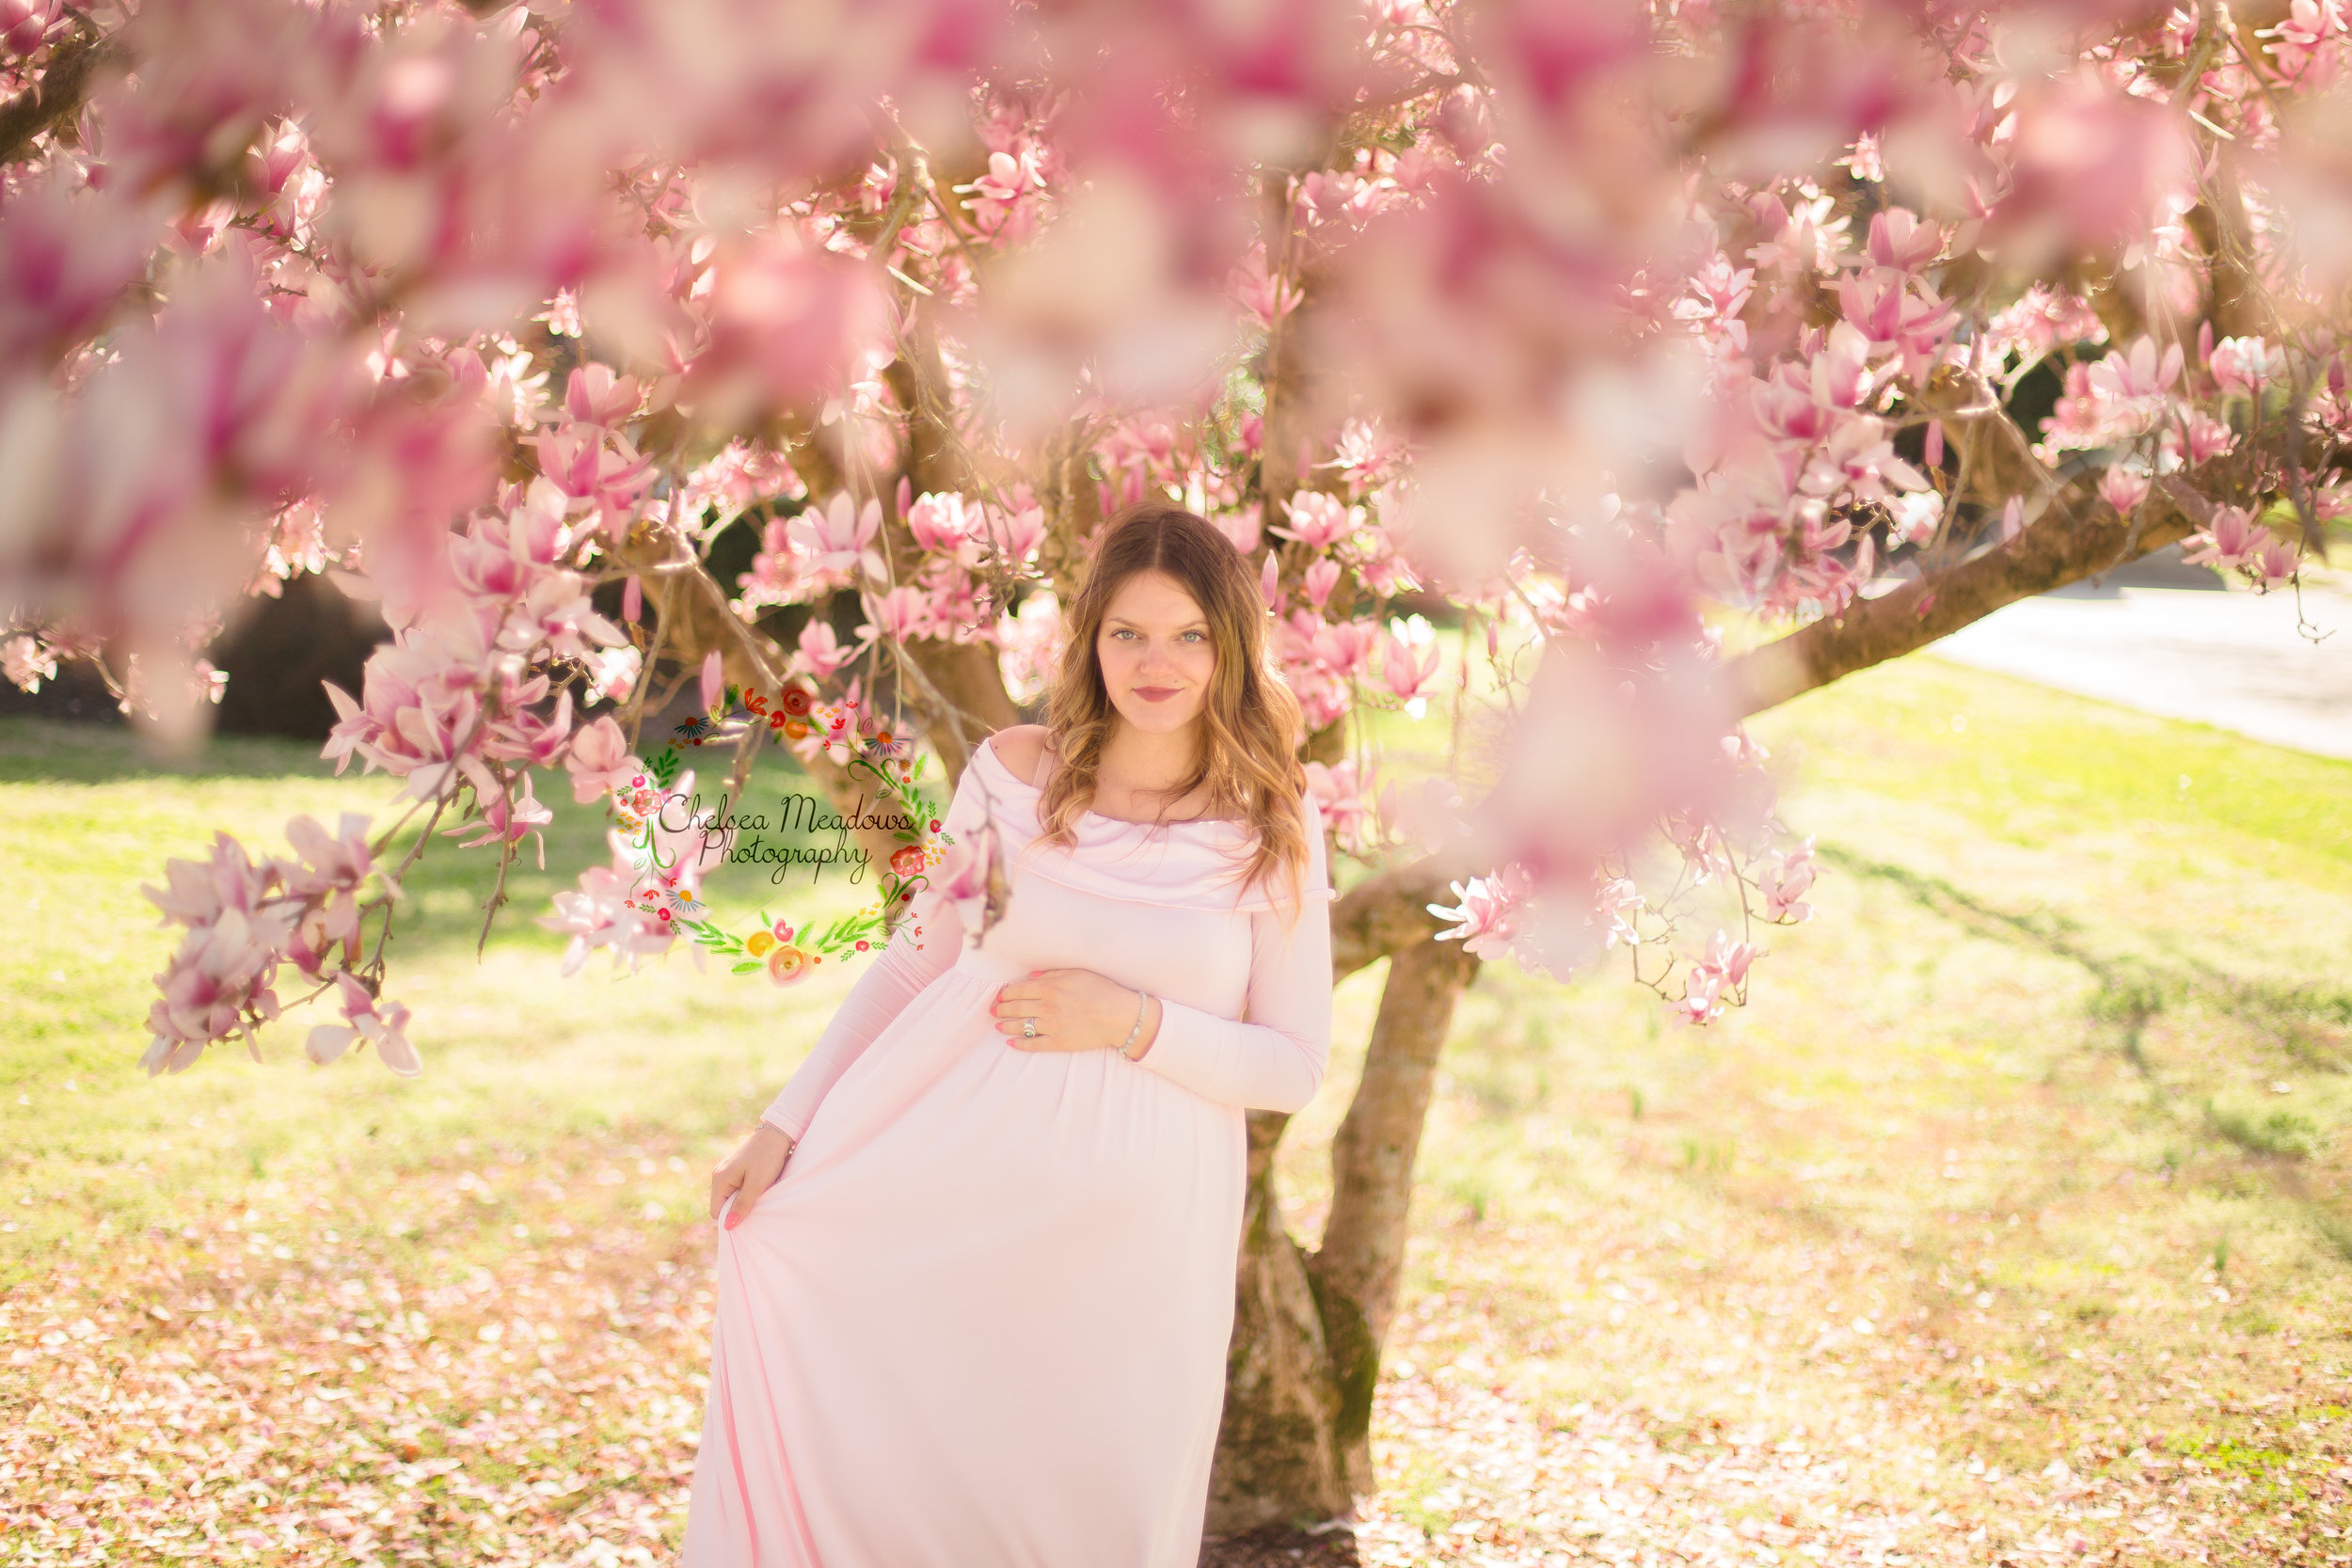 Nicole Spring Maternity Session - Nashville Maternity Photographer - Chelsea Meadows Photography (38)_edited-1.jpg